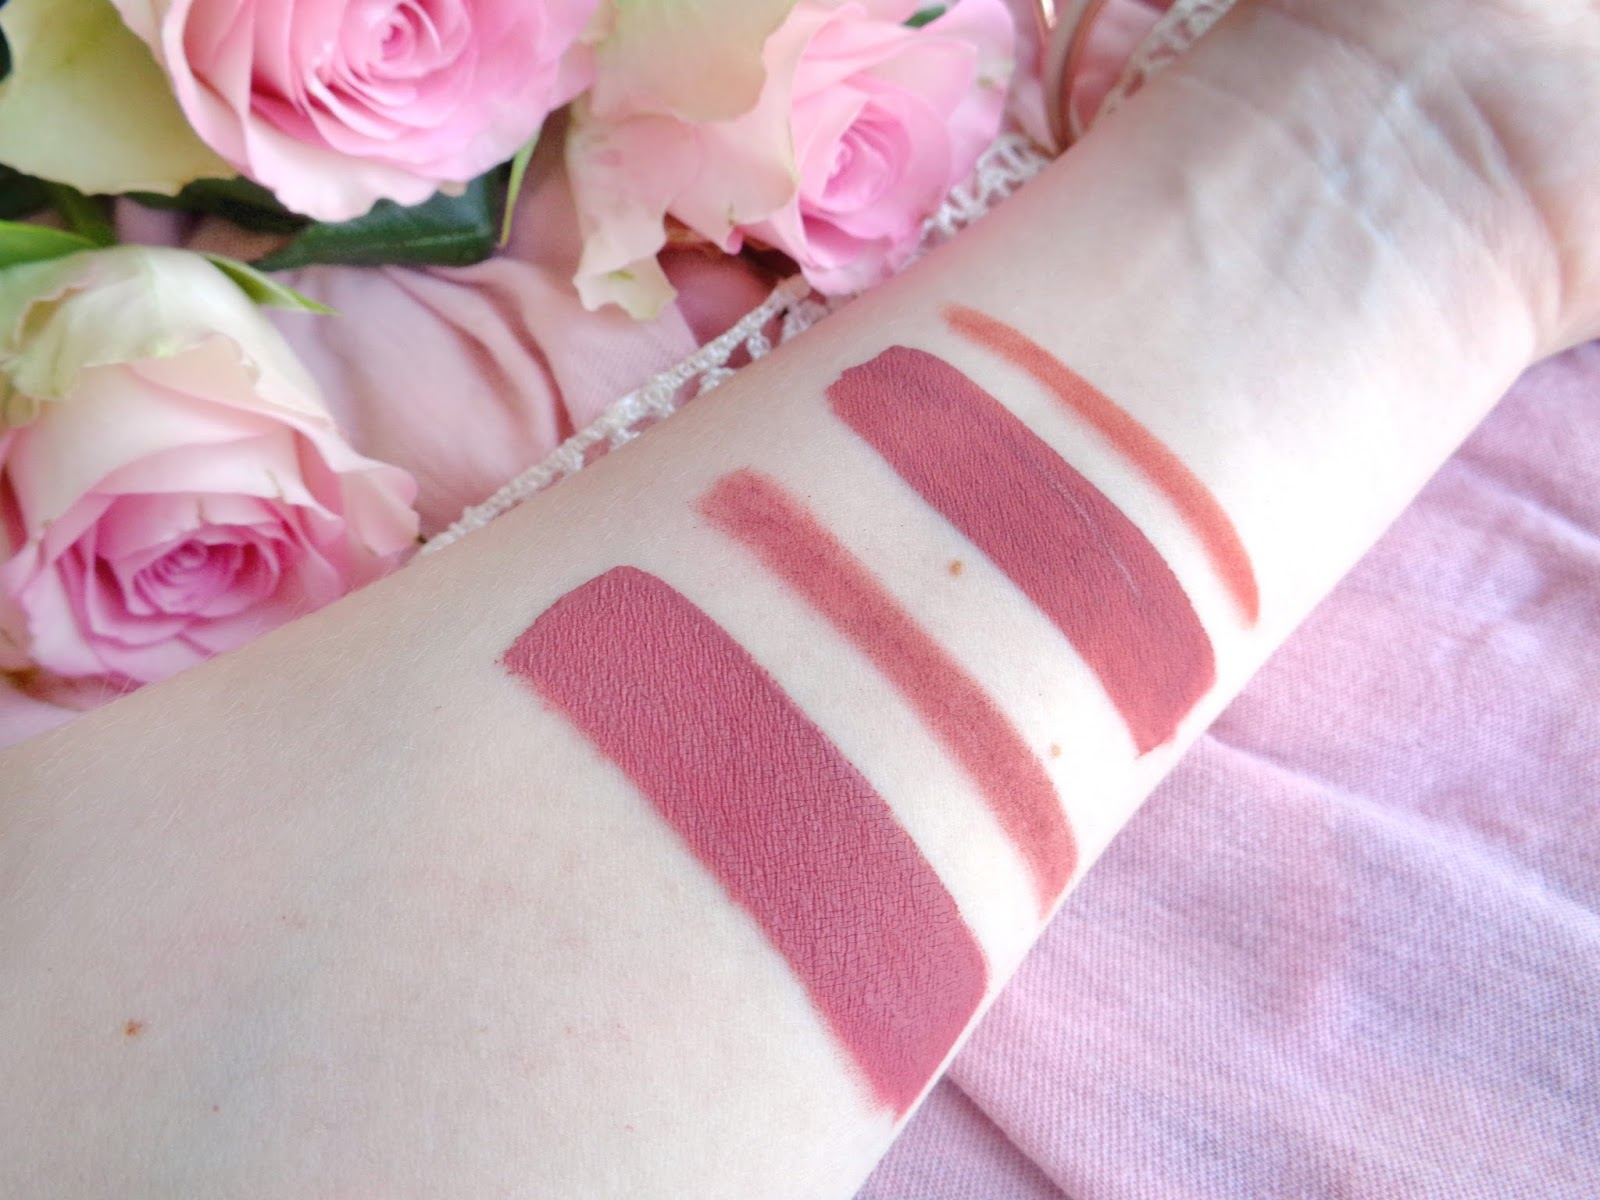 Makeup Revolution Retro Luxe Matte Lip Kit Echelon Swatch; Kylie Cosmetics Matte Liquid Lipstick Candy K Swatch; Fresh Pink Roses